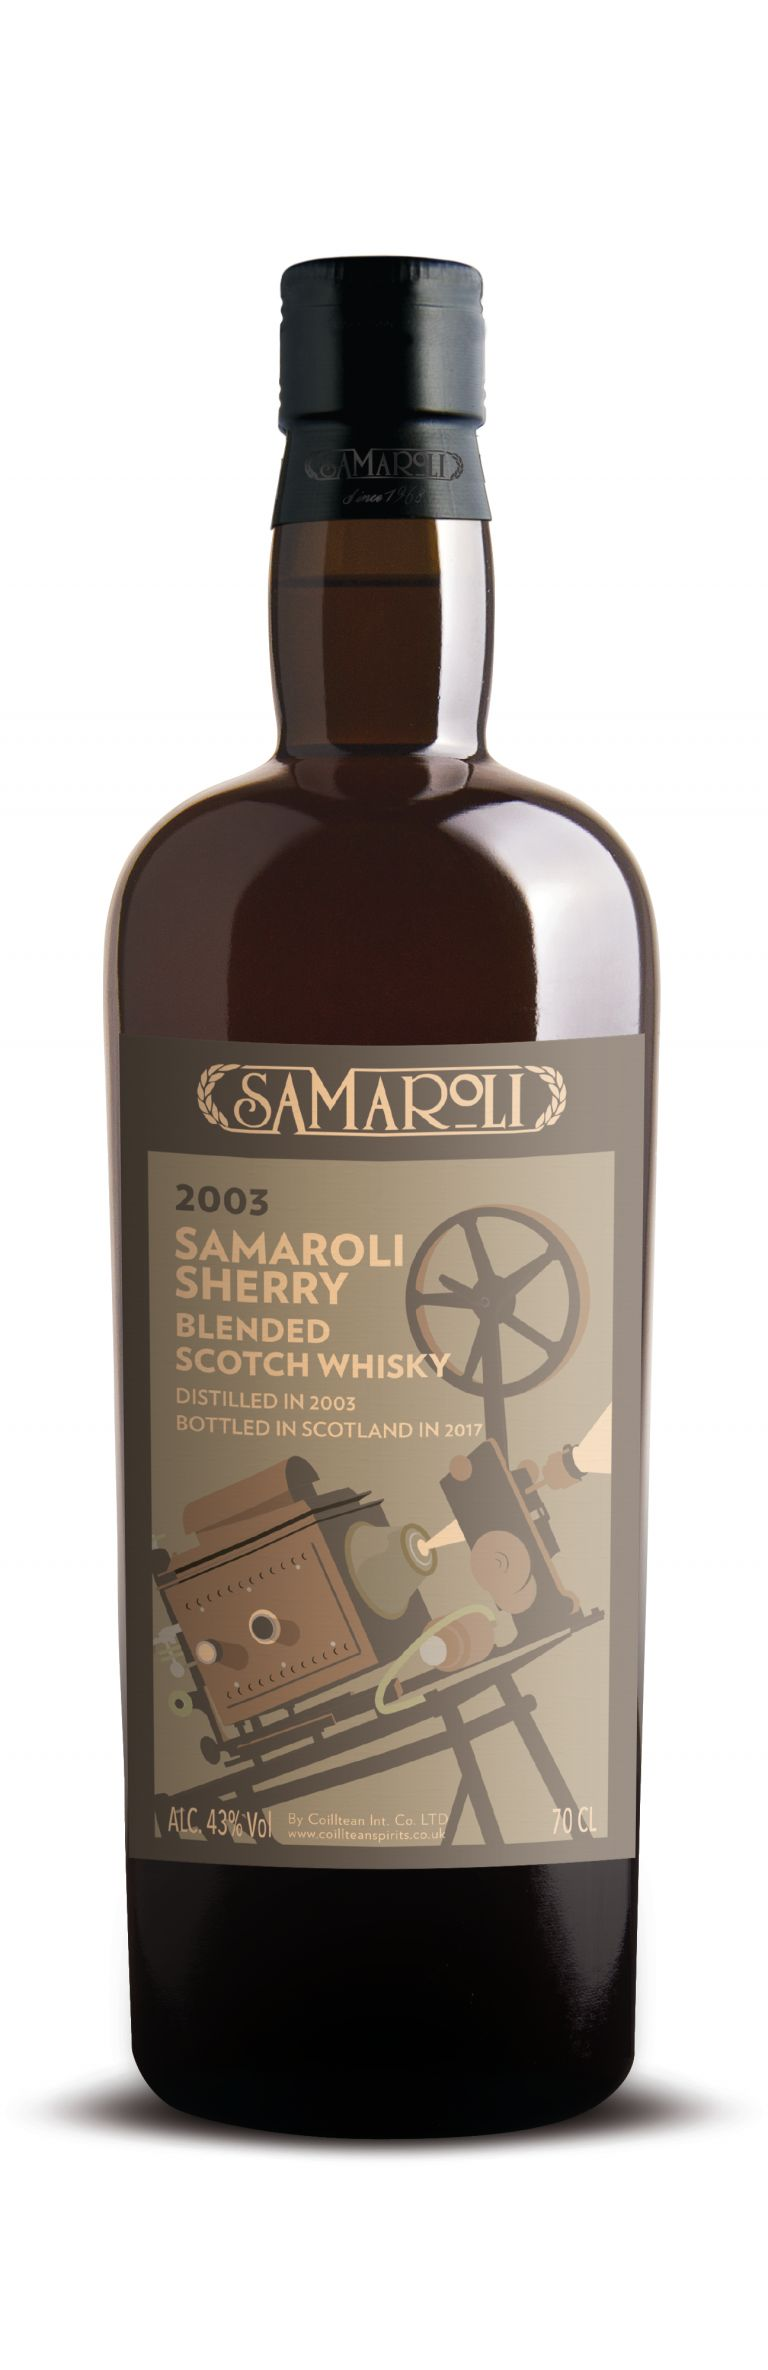 2003 Sherry - Blended Scotch Whisky - ed. 2017 - 70 cl